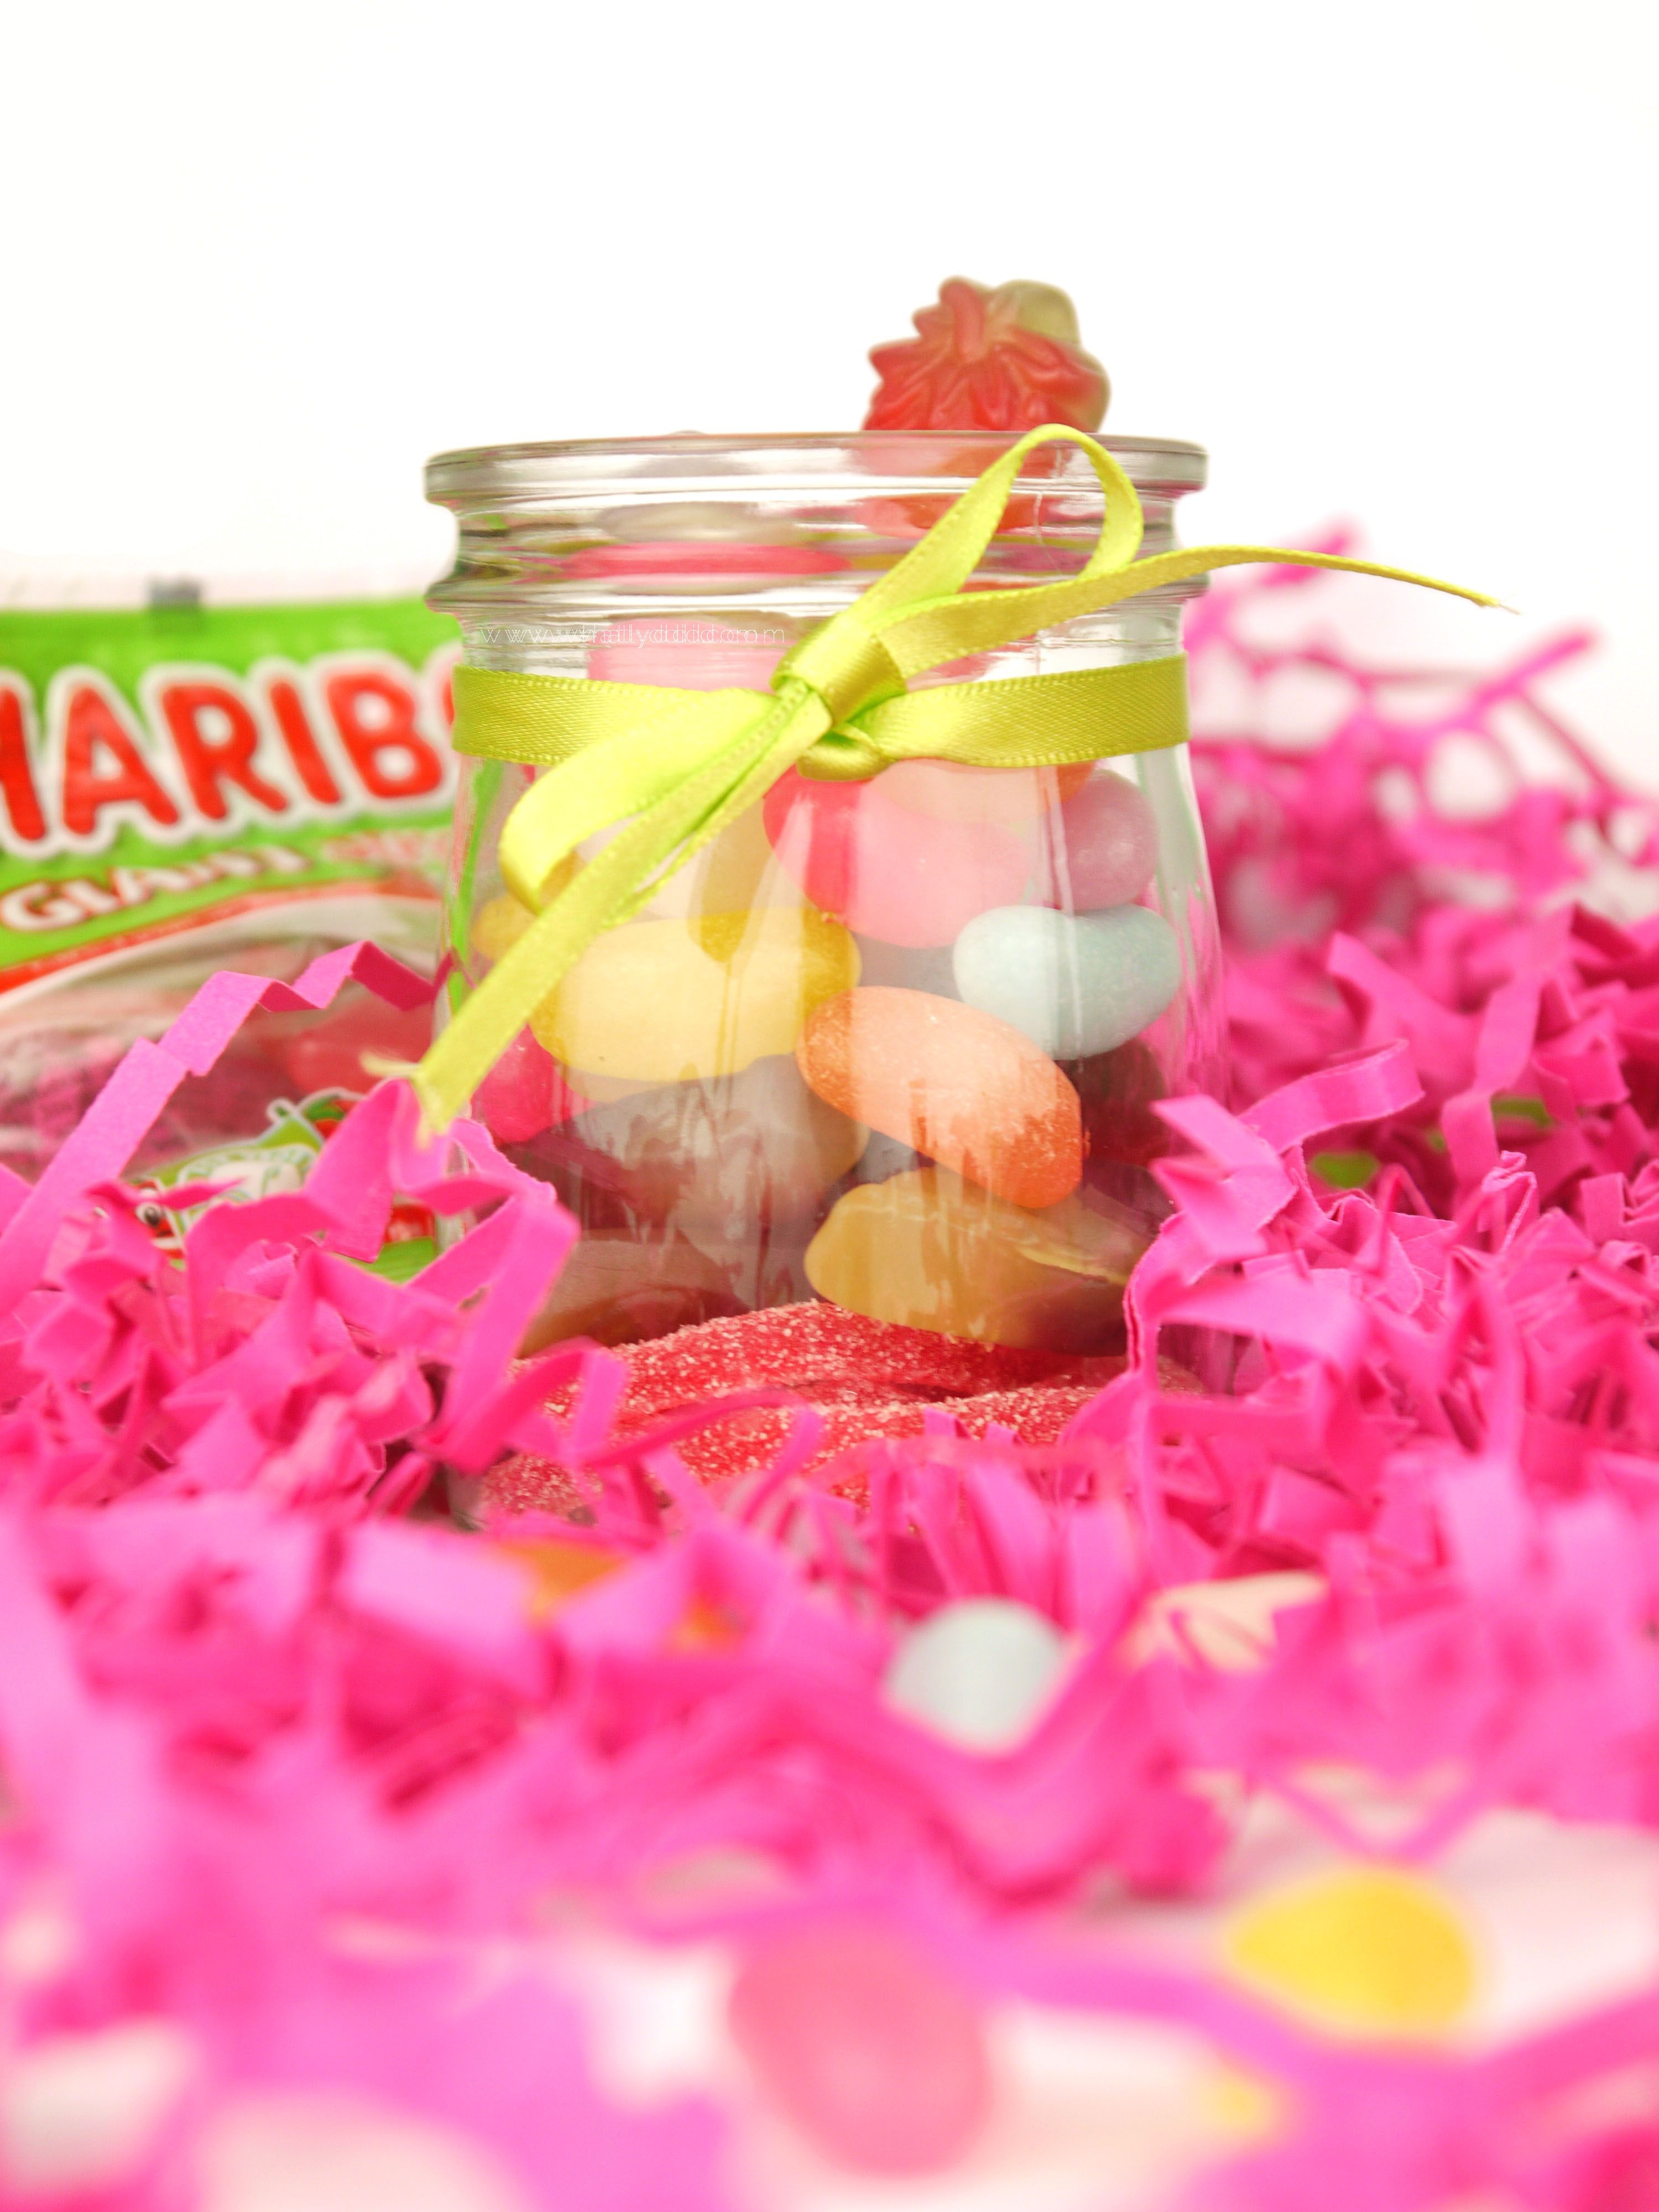 A Look At The 6 Haribo Varieties Of Sweets Suitable For Vegetarian